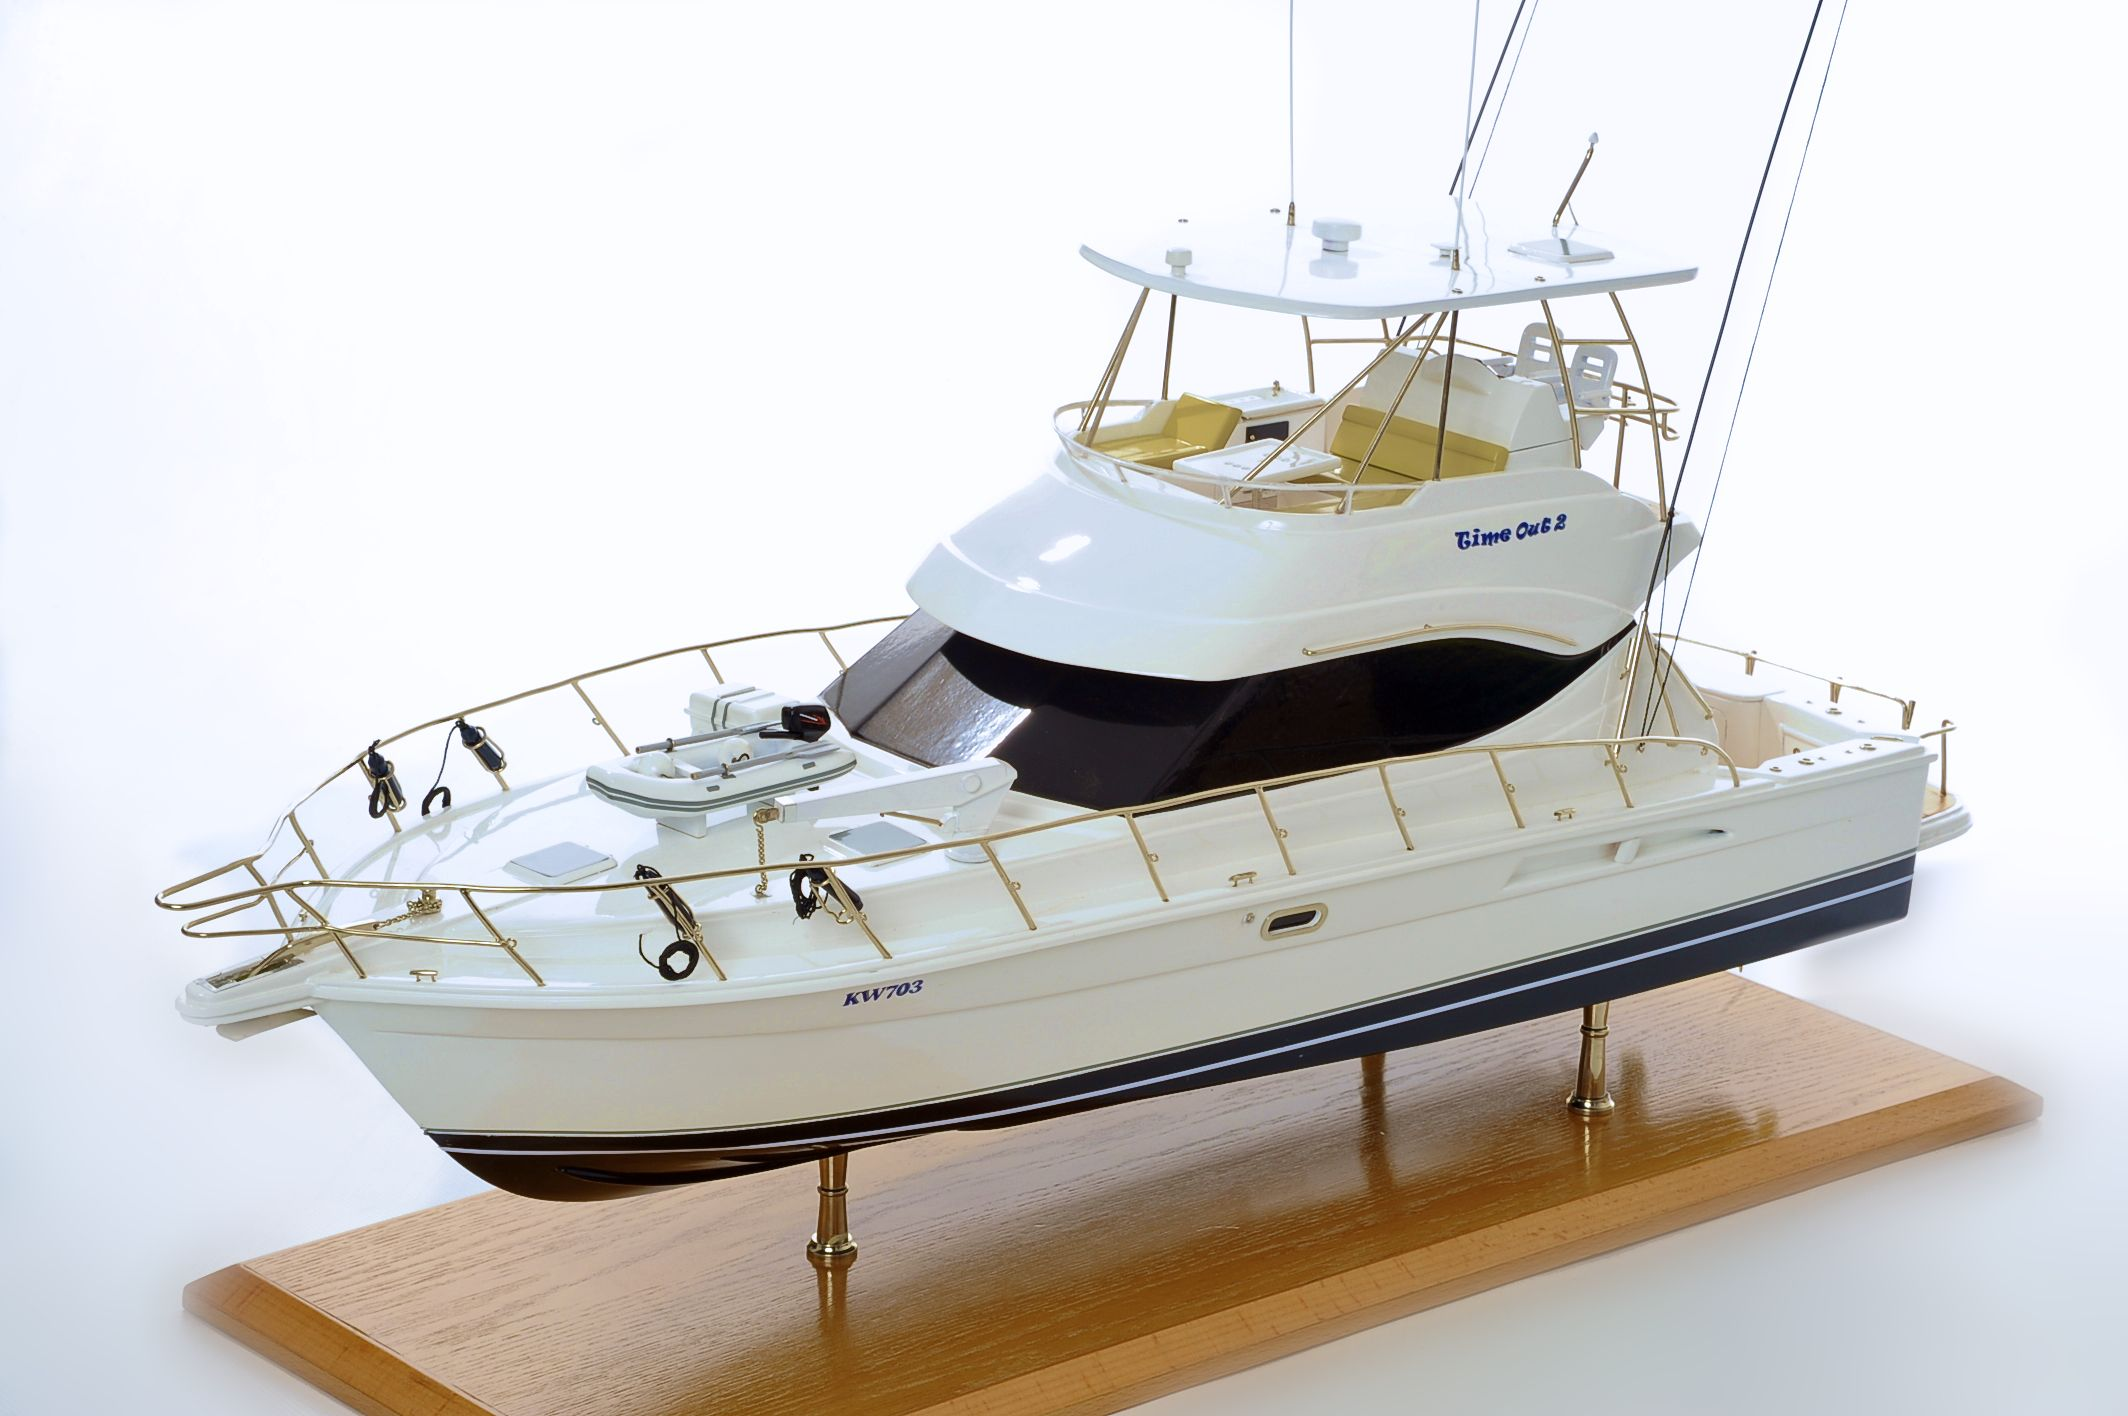 1517-8952-Rivera-45-Model-Boat-Time-Out-2